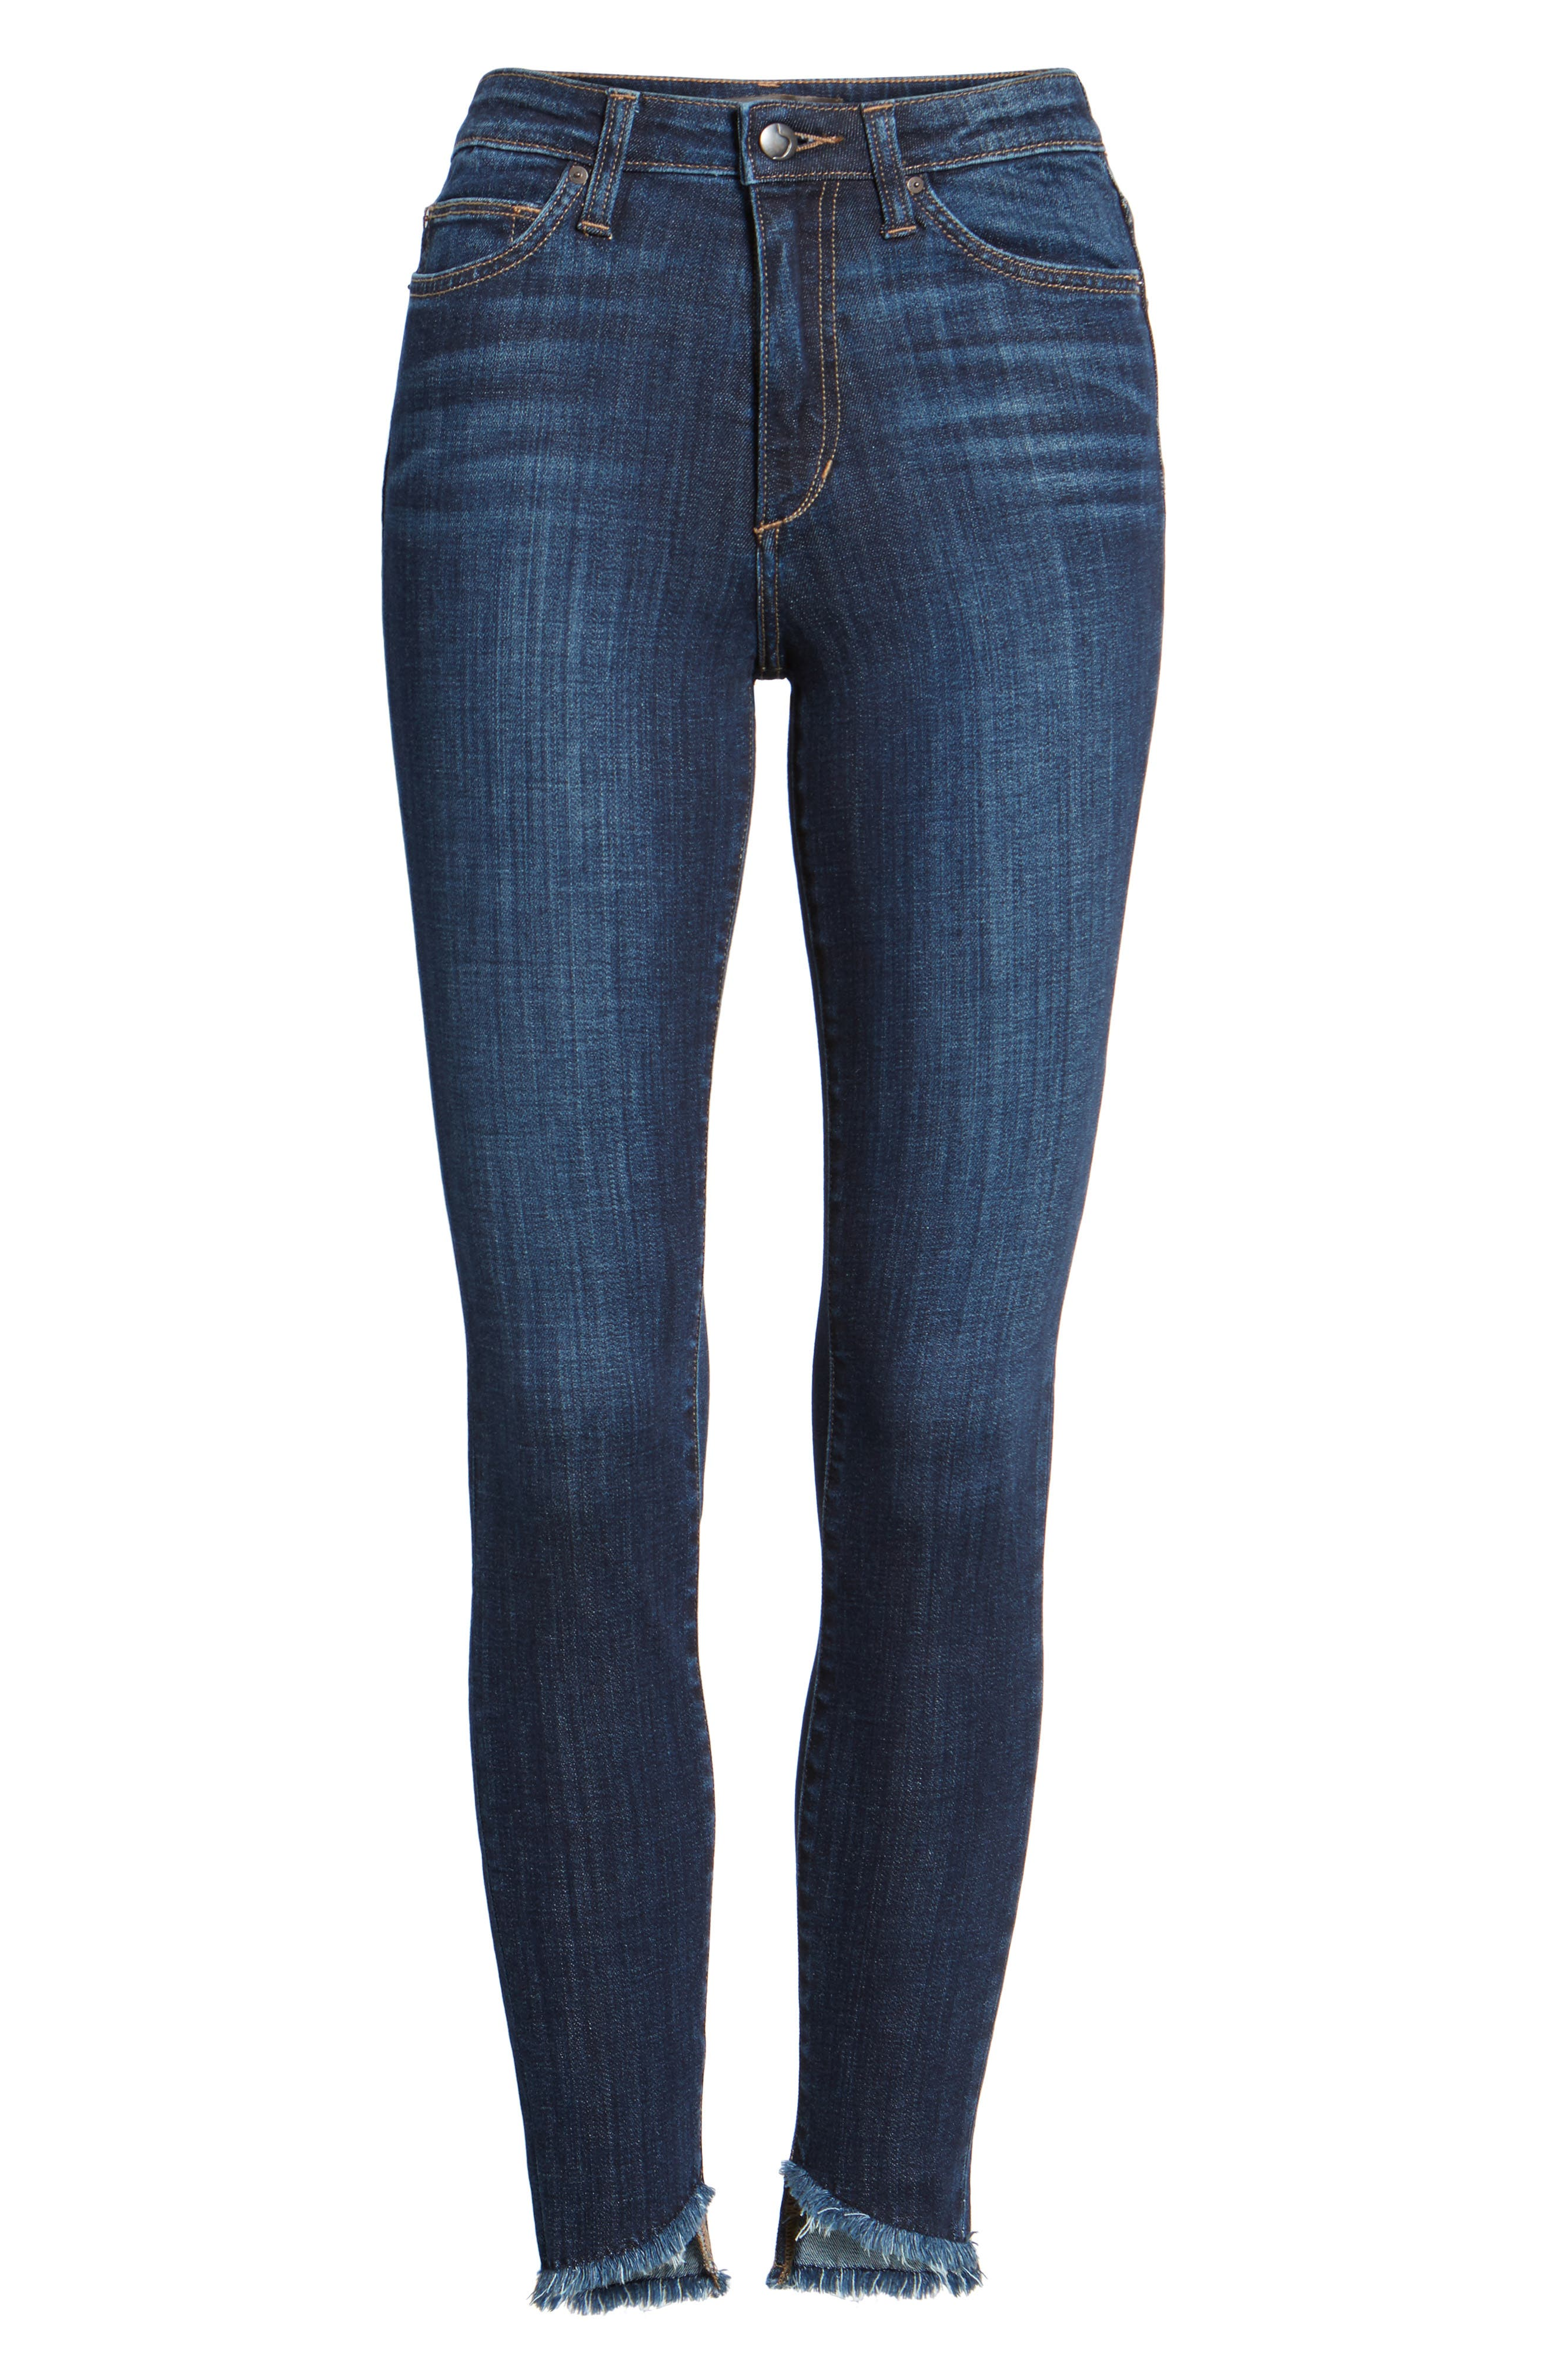 Charlies Blondie Hem Jeans,                             Alternate thumbnail 6, color,                             Marquita